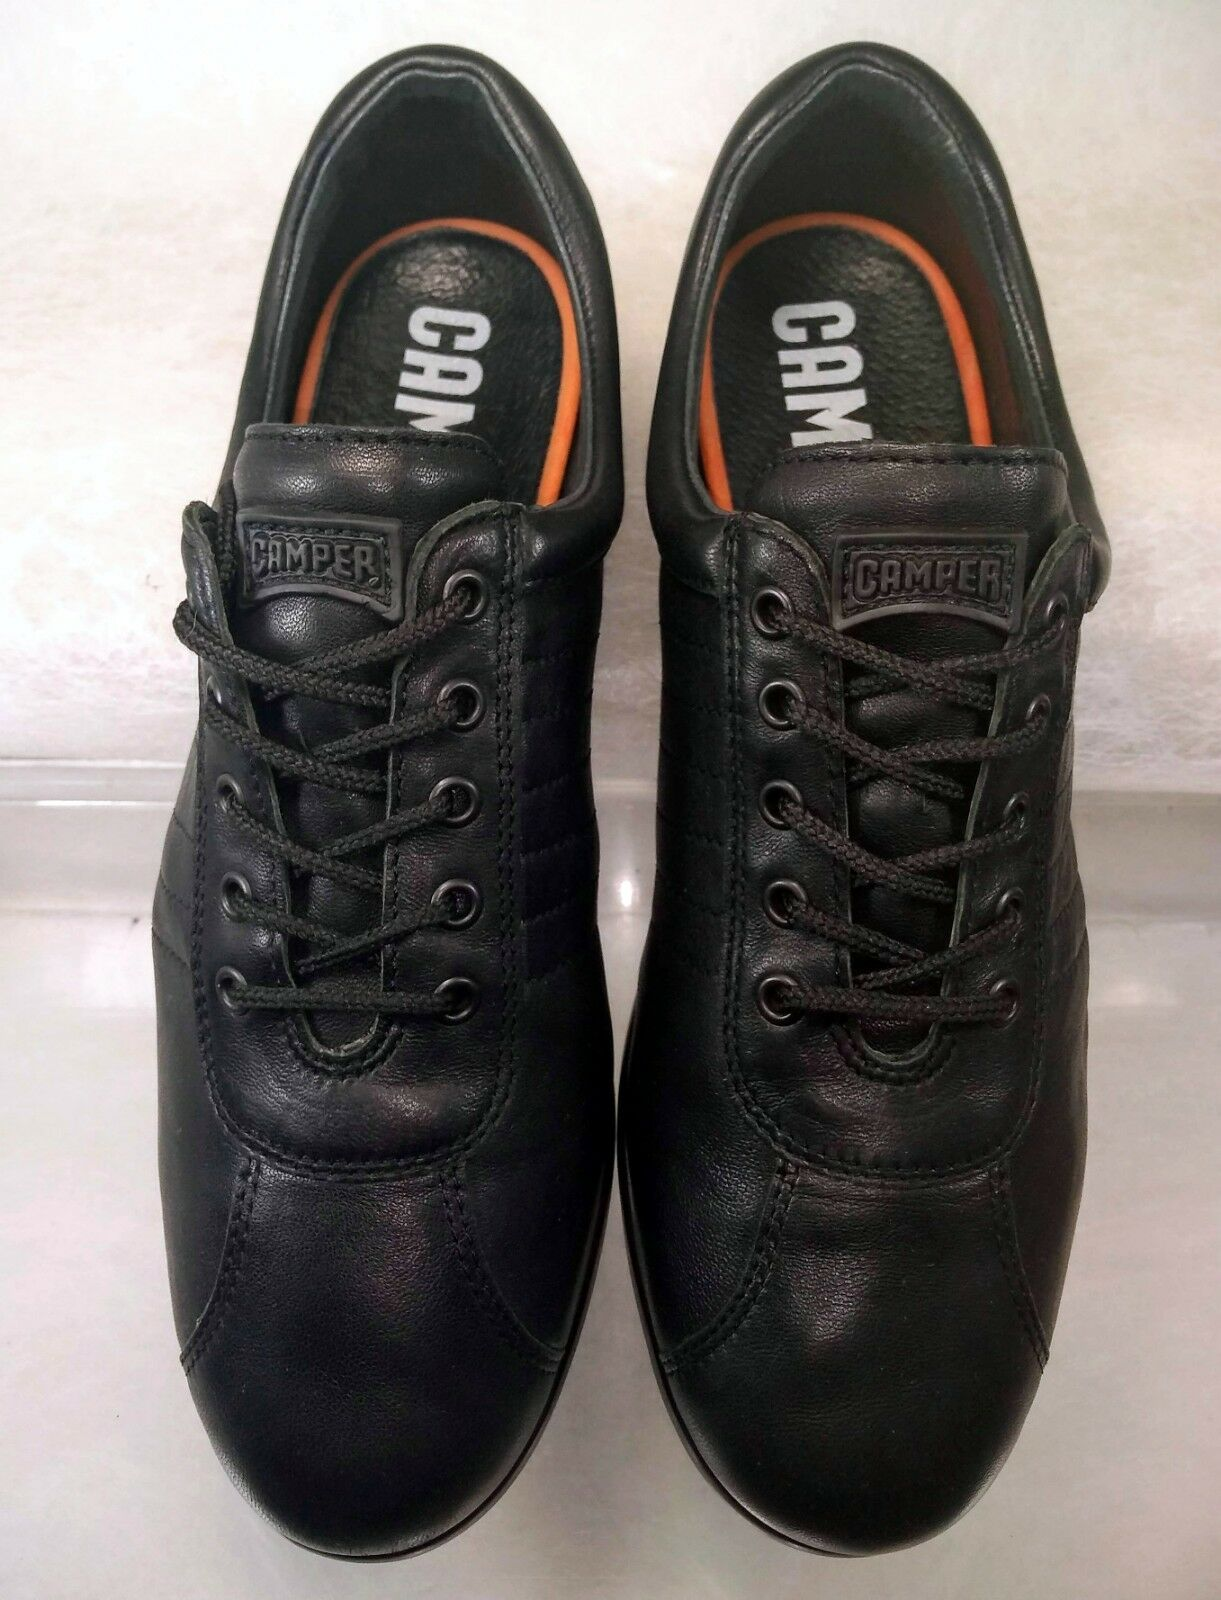 Camper Pelotas Ariel Casual Lace Up Up Up Black Sneakers Women US 10   40 2ce45f